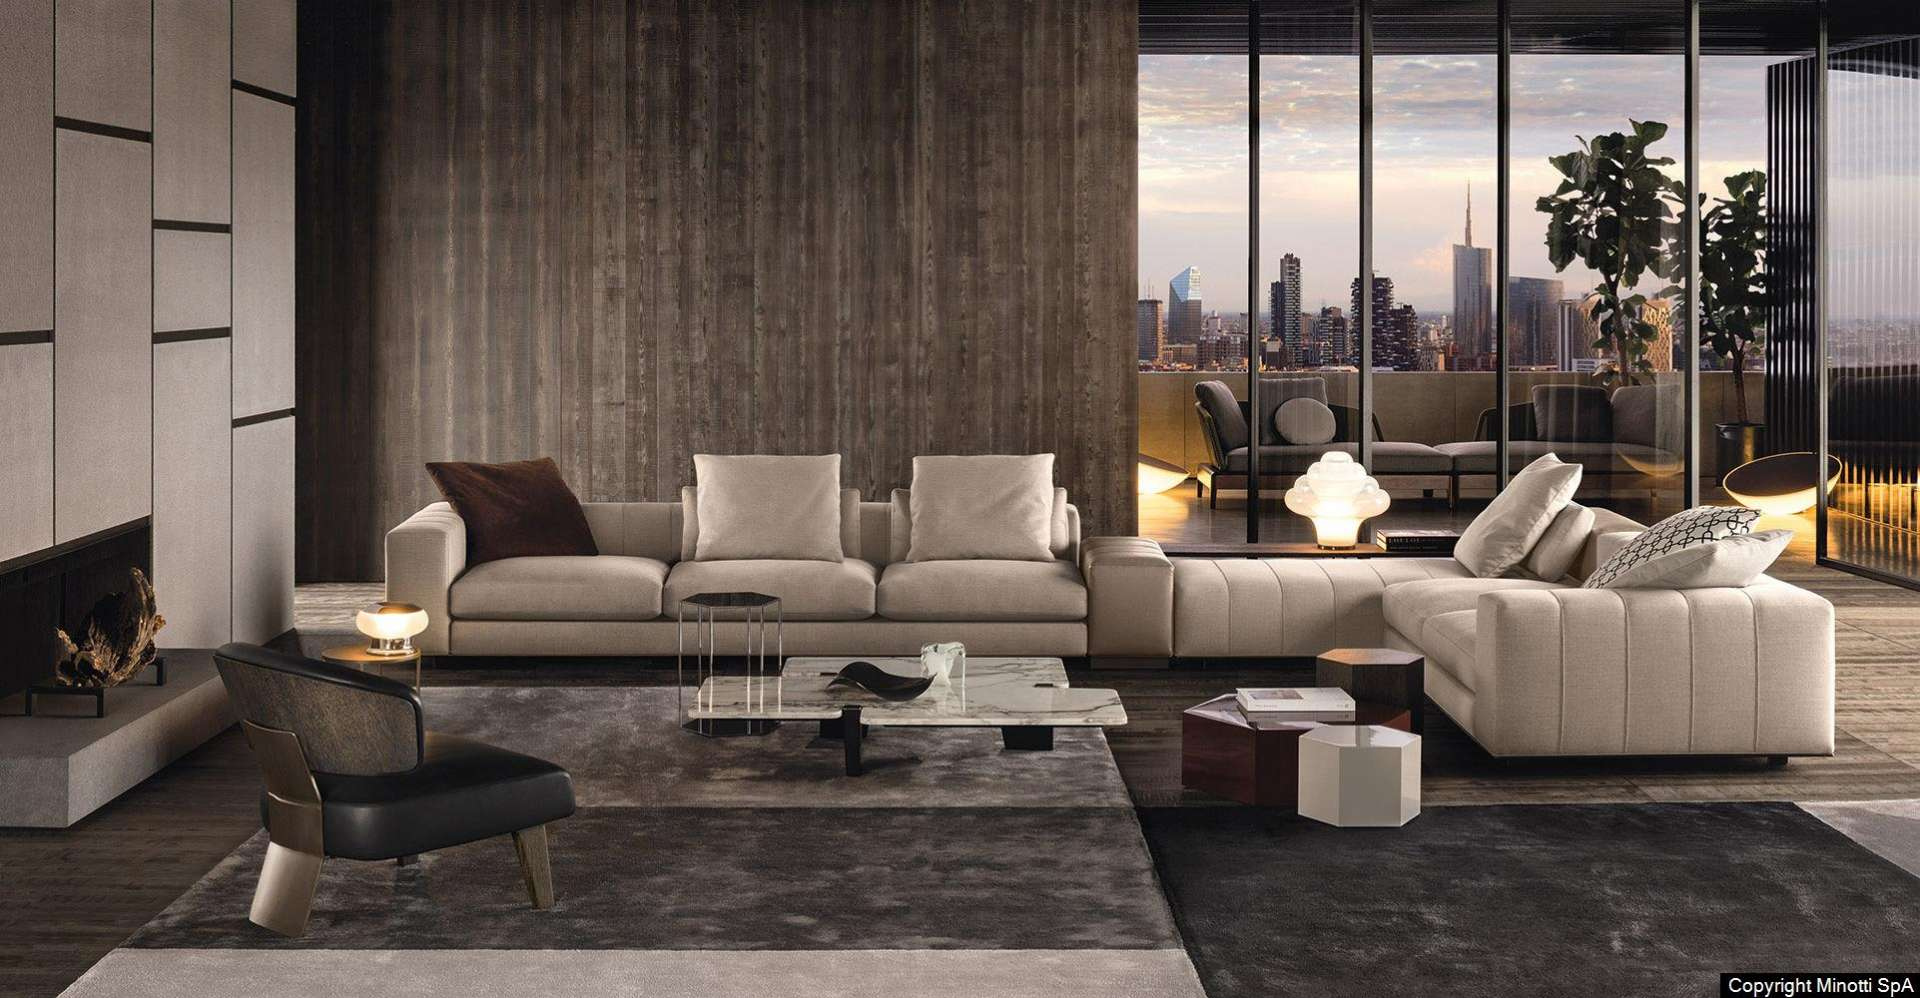 Full Size of Minotti Sofa Range For Sale Freeman Seating System Alexander Lawrence Sleeper Hamilton Indiana Couch Bed Dimensions Used India Andersen List Lukaszewitz Big Sofa Minotti Sofa